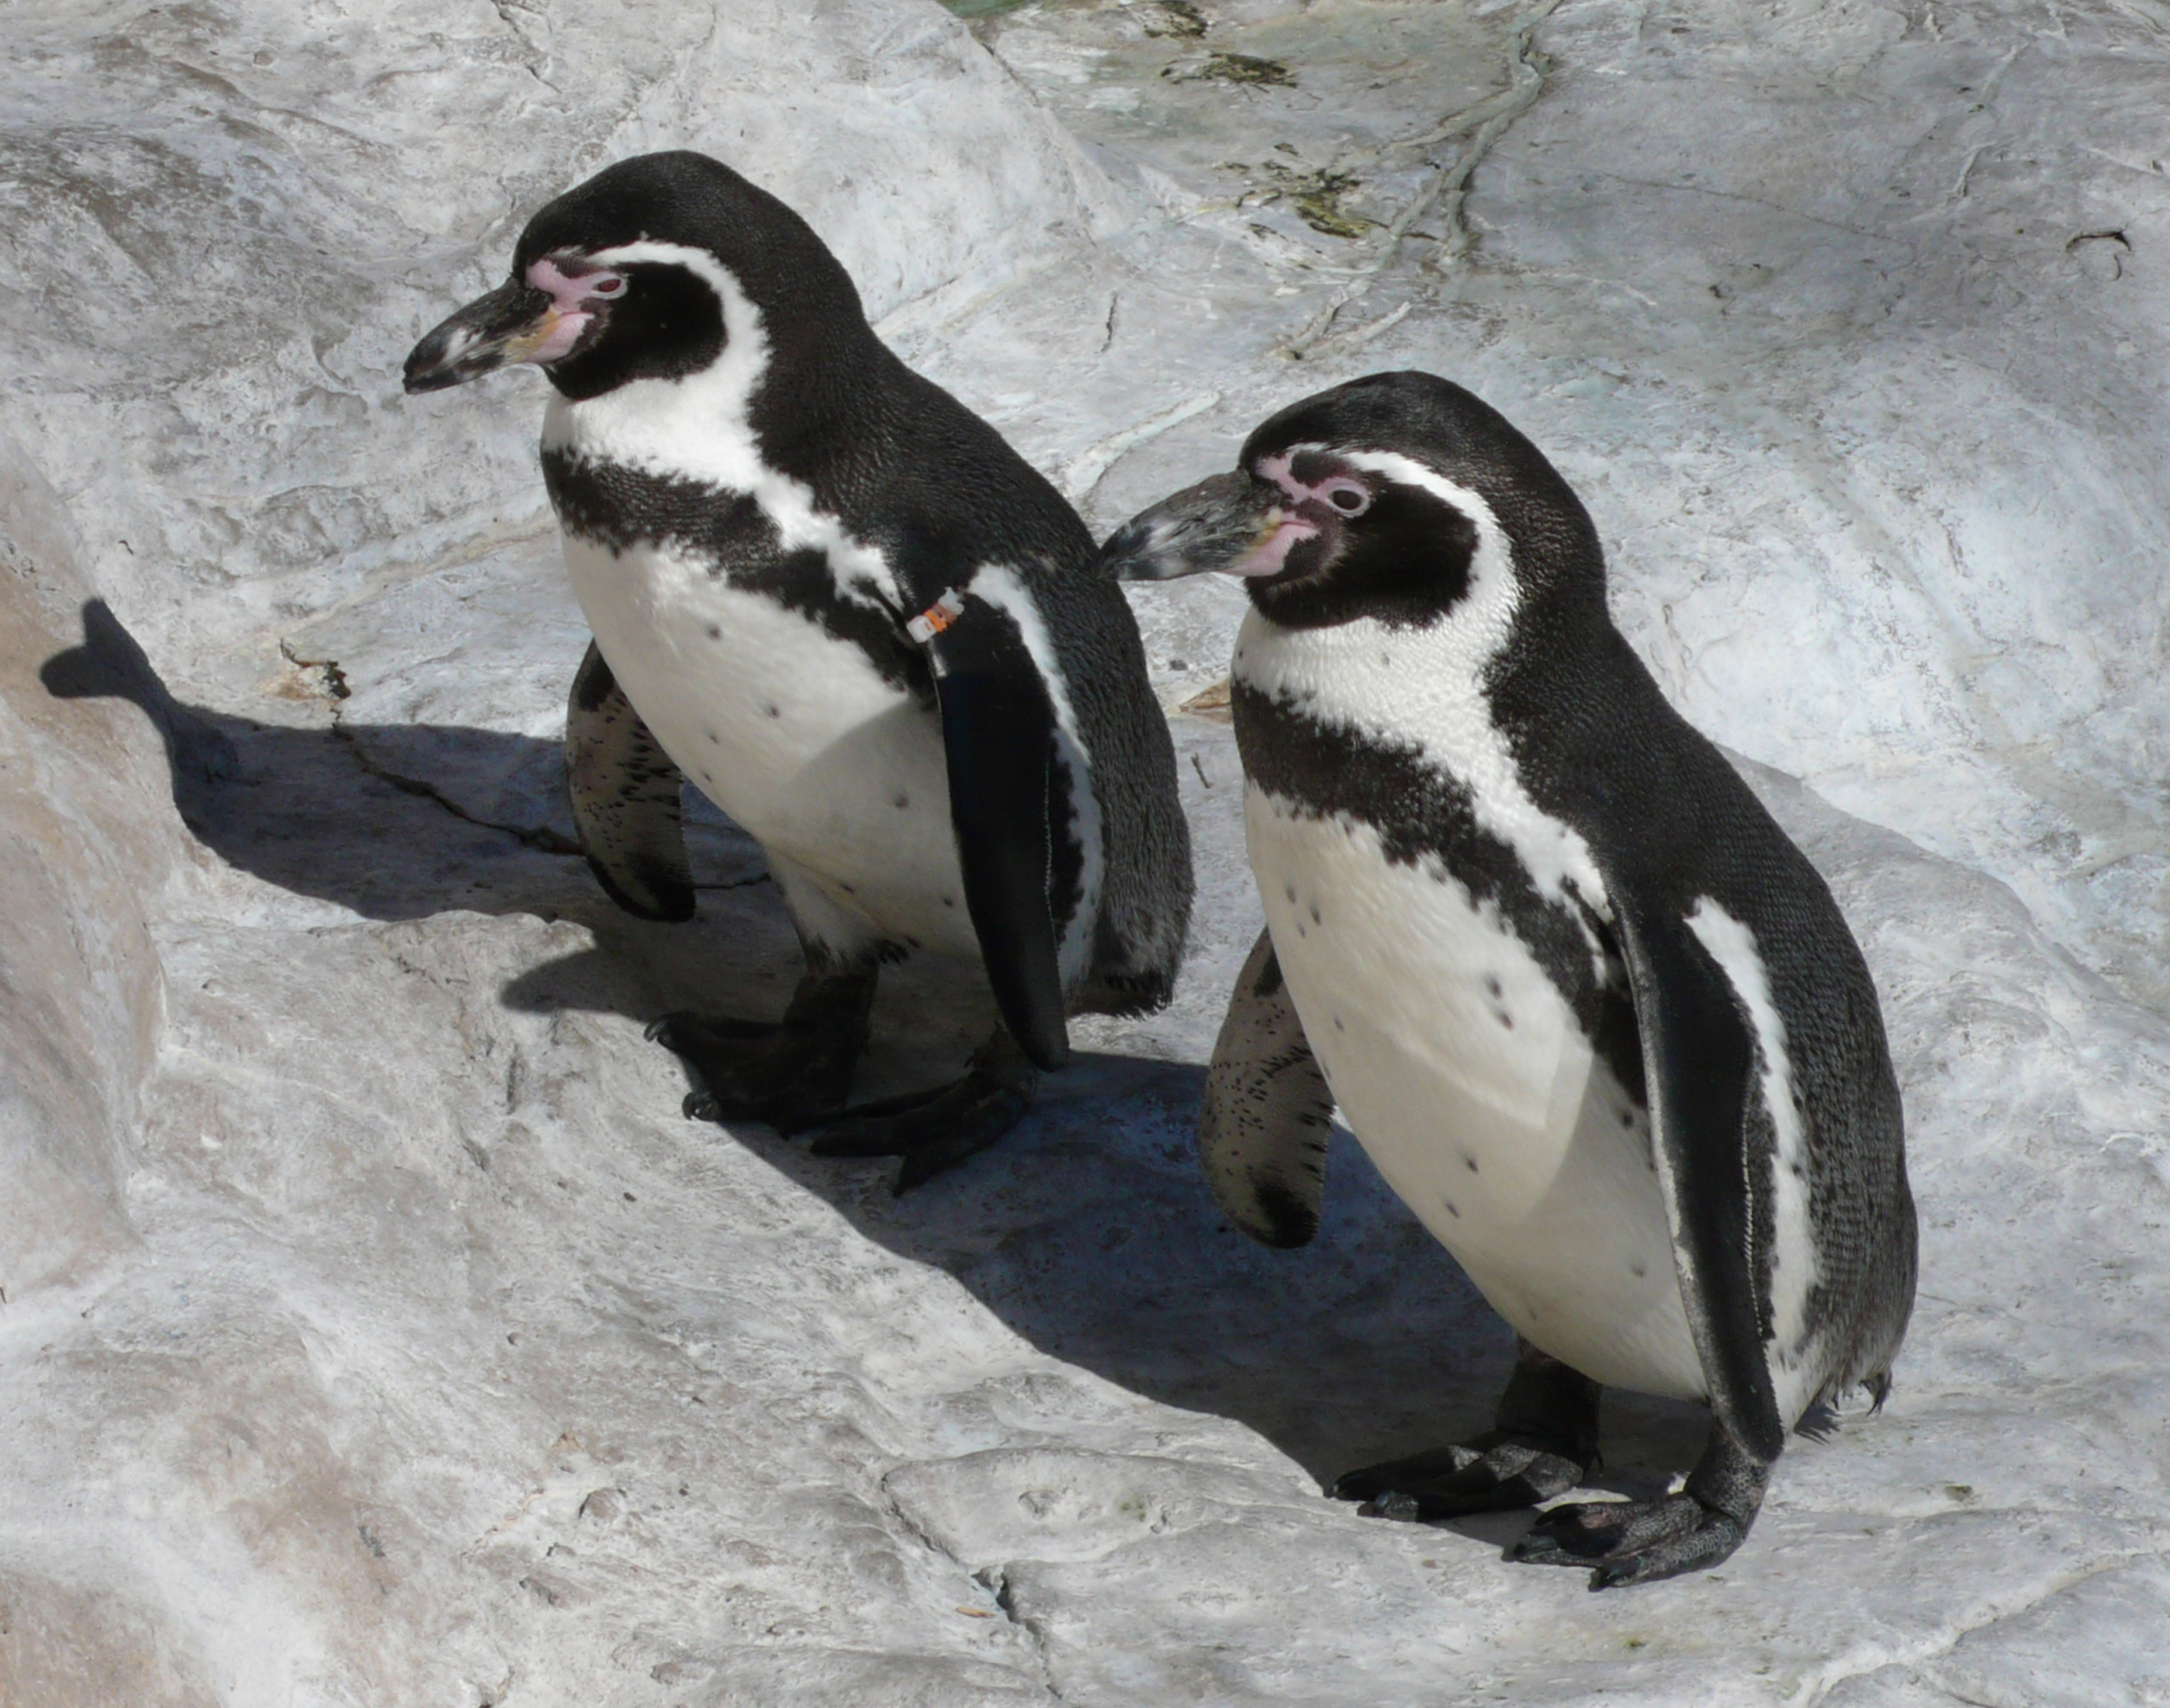 File:Humboldt Penguins.jpg - Wikimedia Commons